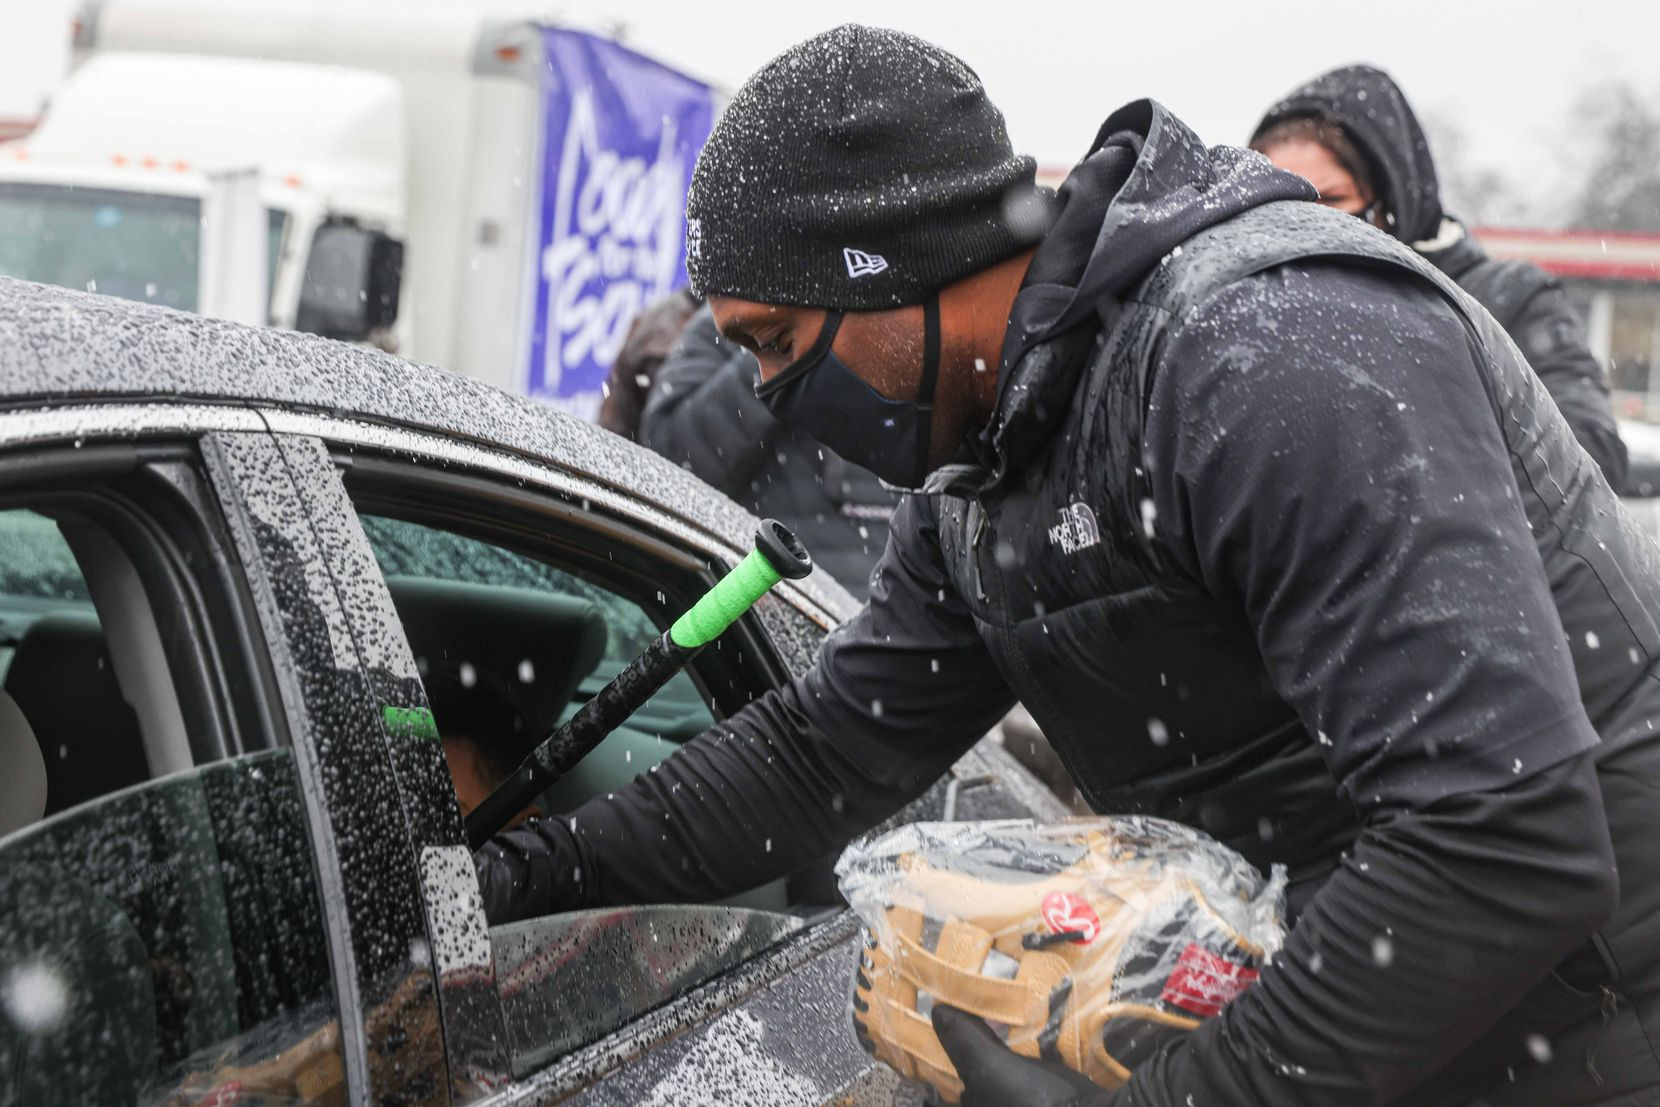 Former professional baseball center fielder and right fielder Torii Hunter, gives baseball equipment as part of the donations made by the MLB Players Alliance in Oak Cliff on Sunday, January 10, 2021.